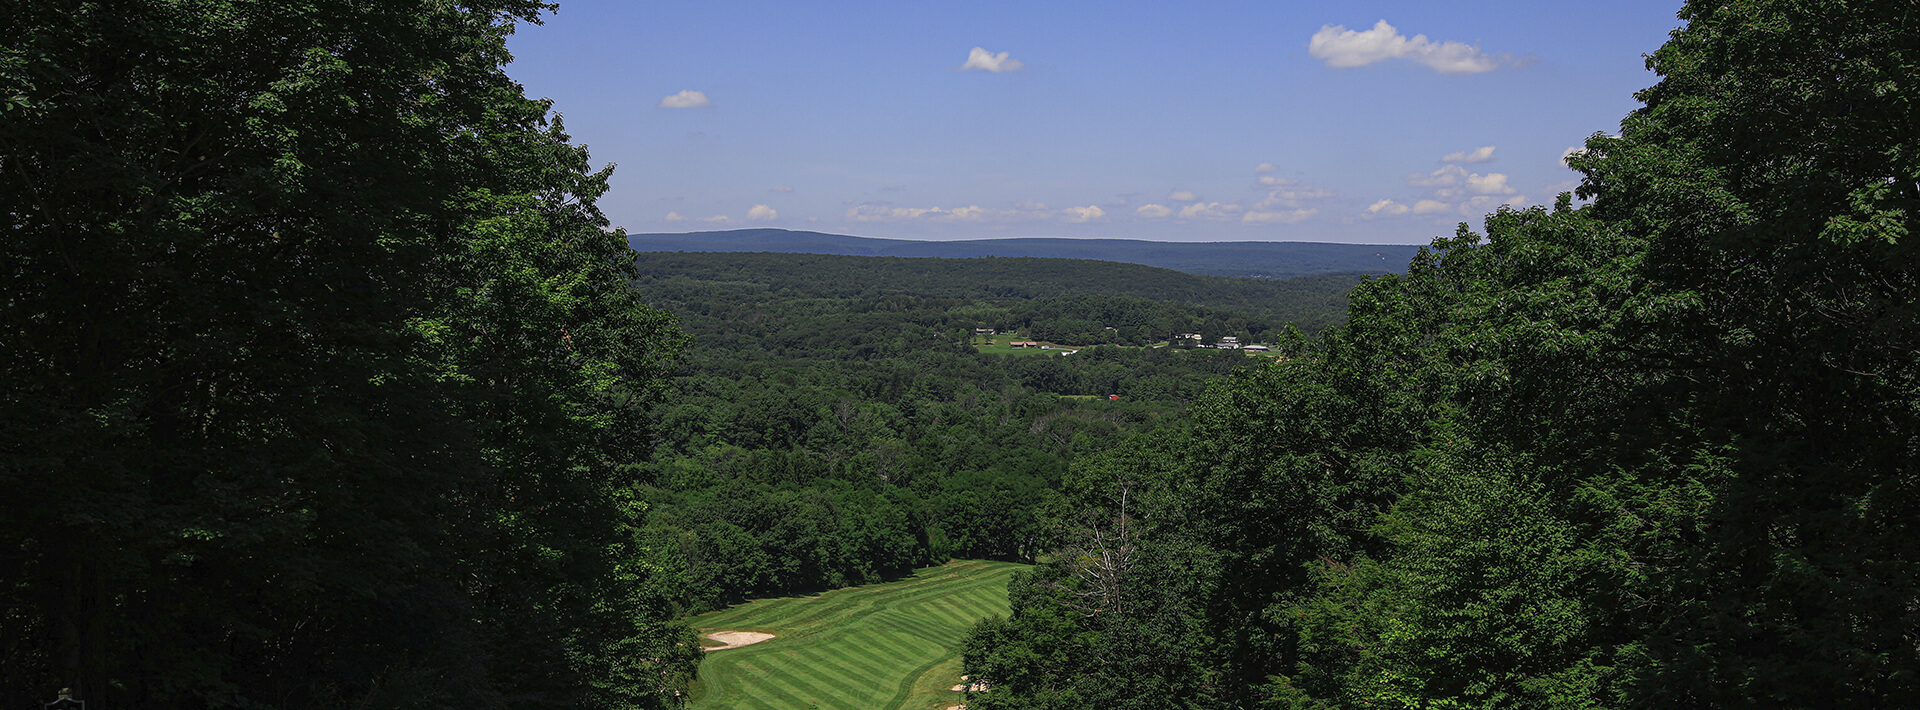 A panoramic view of the pocono mountains from the golf course